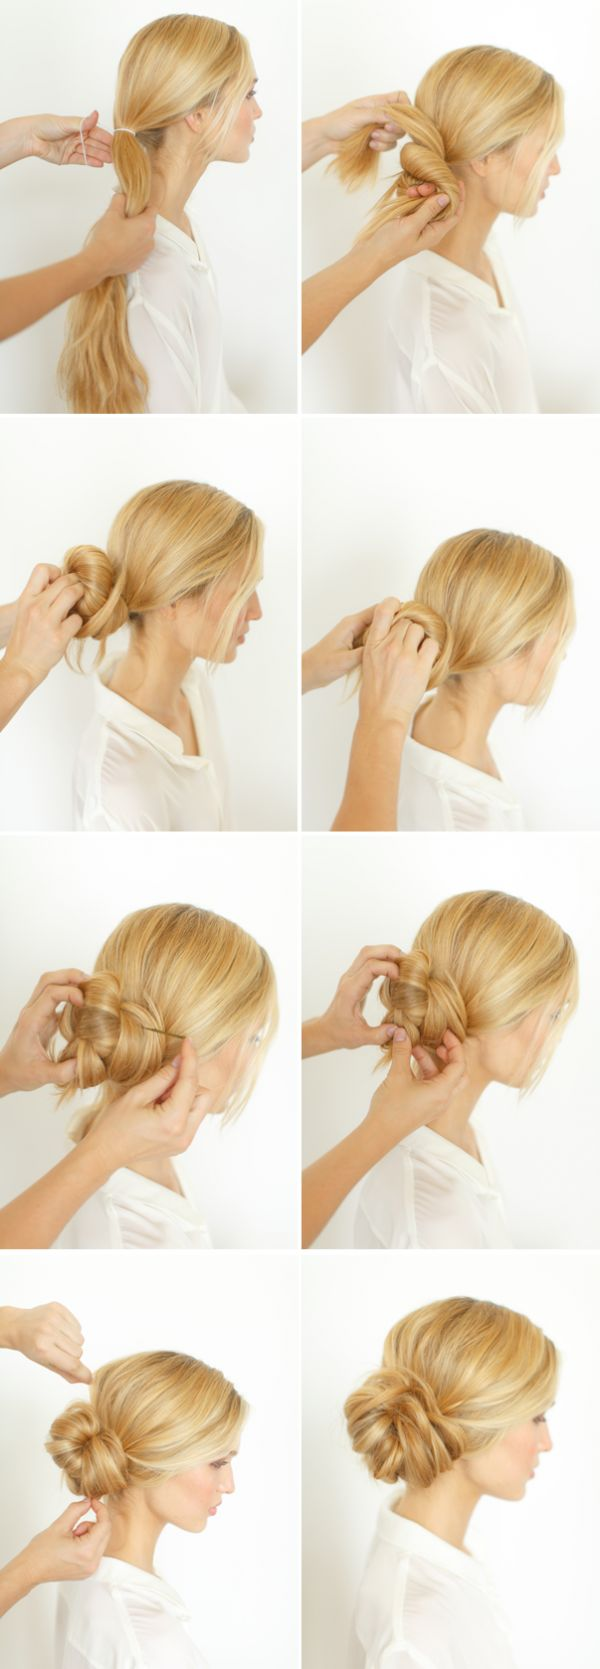 DIY Side Hairstyles - For more amazing Hair & Beauty Trends visit us at http://www.brides-book.com/#!brides-book-outlets/ck9l and remember to join the VIB Club for amazing offers from all our local vendors.